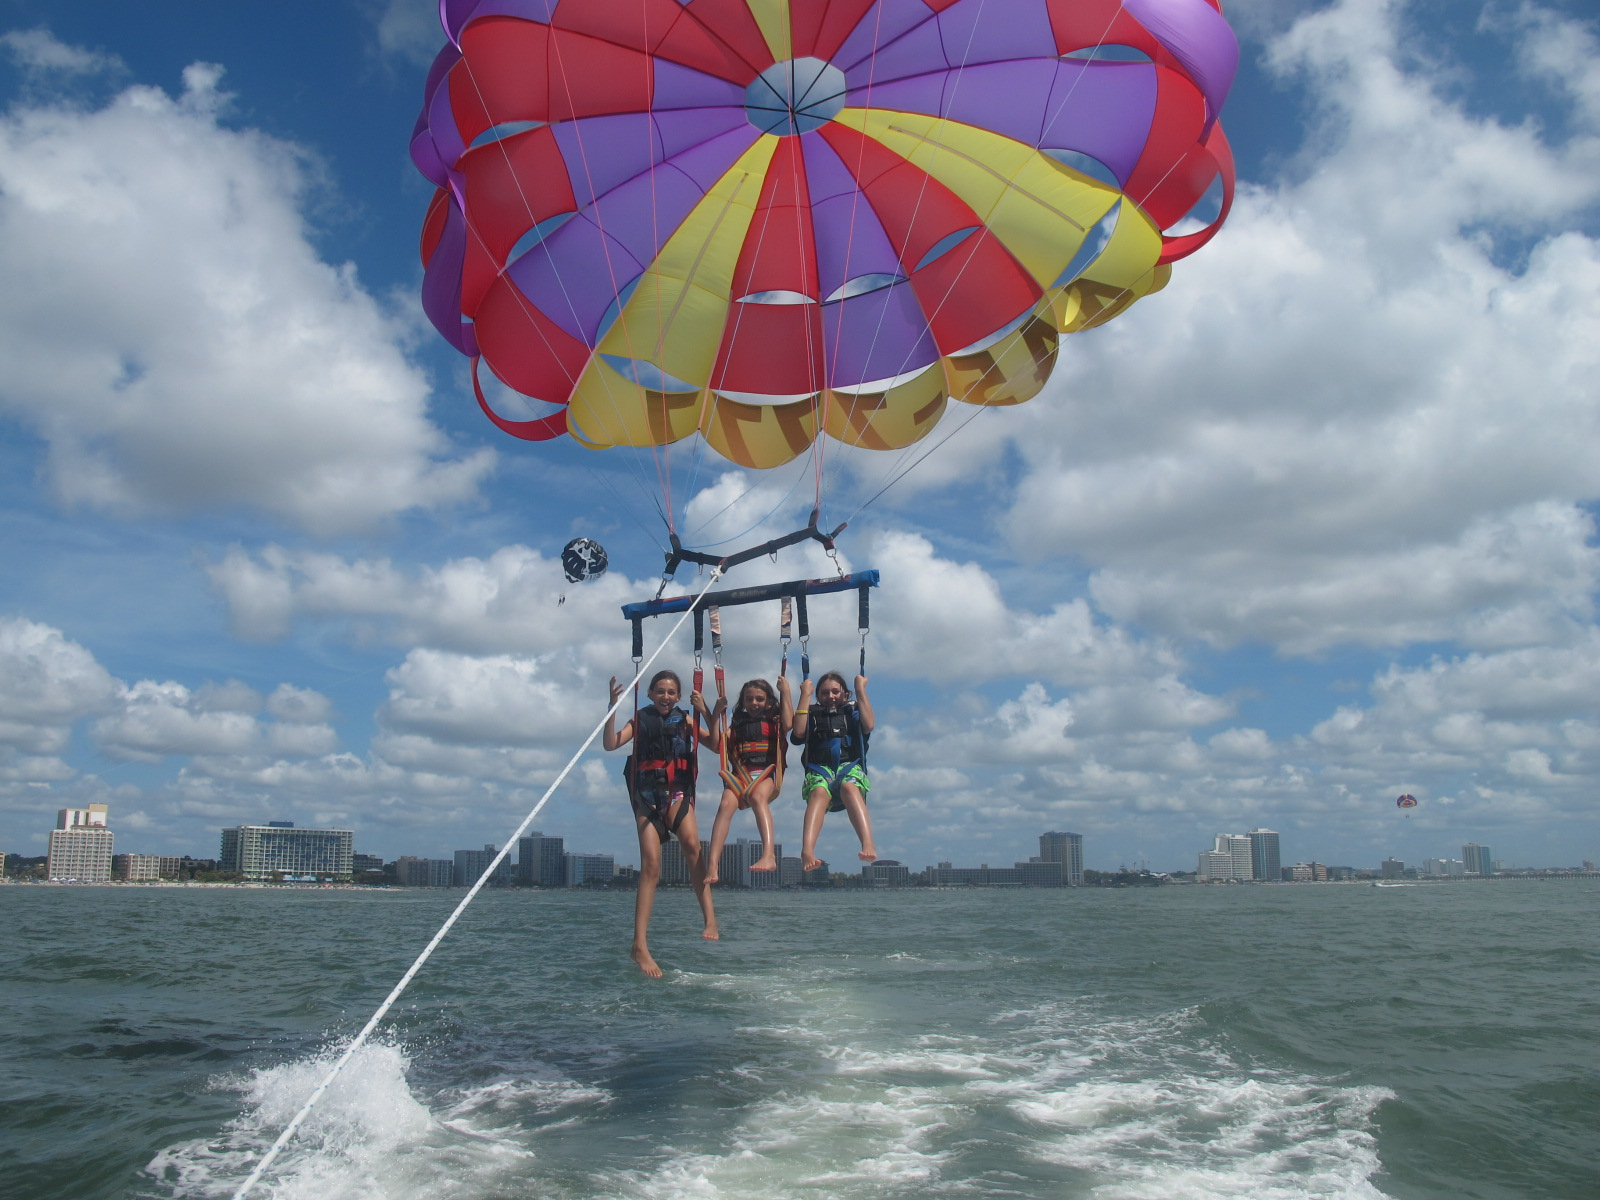 Life S A Beach In Myrtle Huffpost Ocean Watersports Parasailing